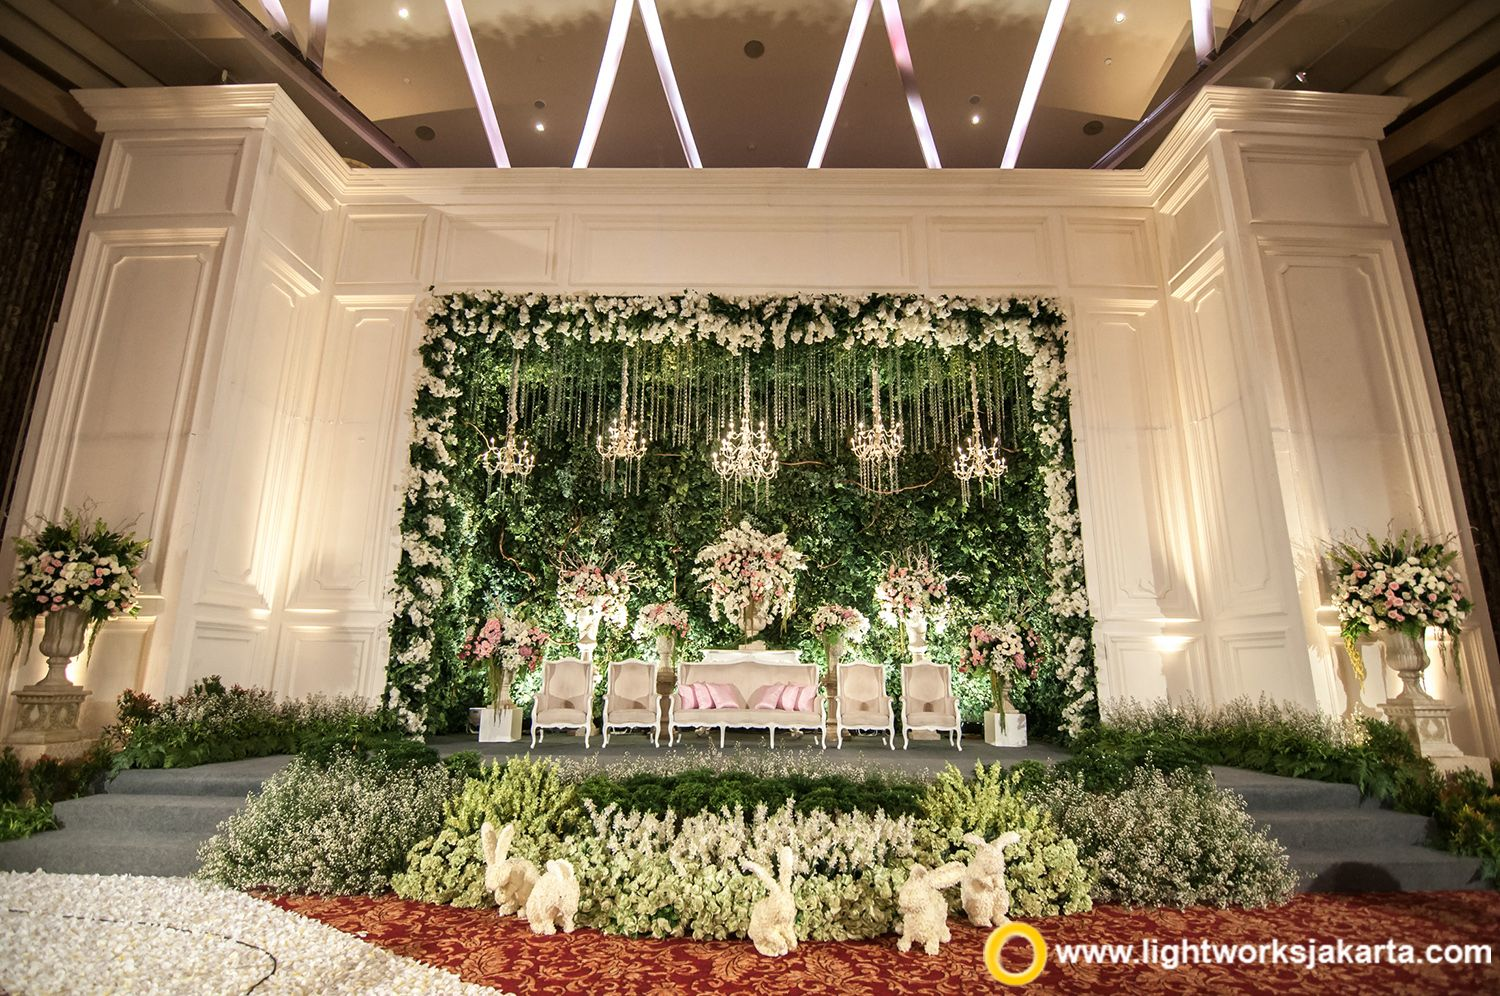 Wedding stage for christian and felicia wedding reception with wedding stage for christian and felicia wedding reception with garden as the theme decoration created junglespirit Gallery